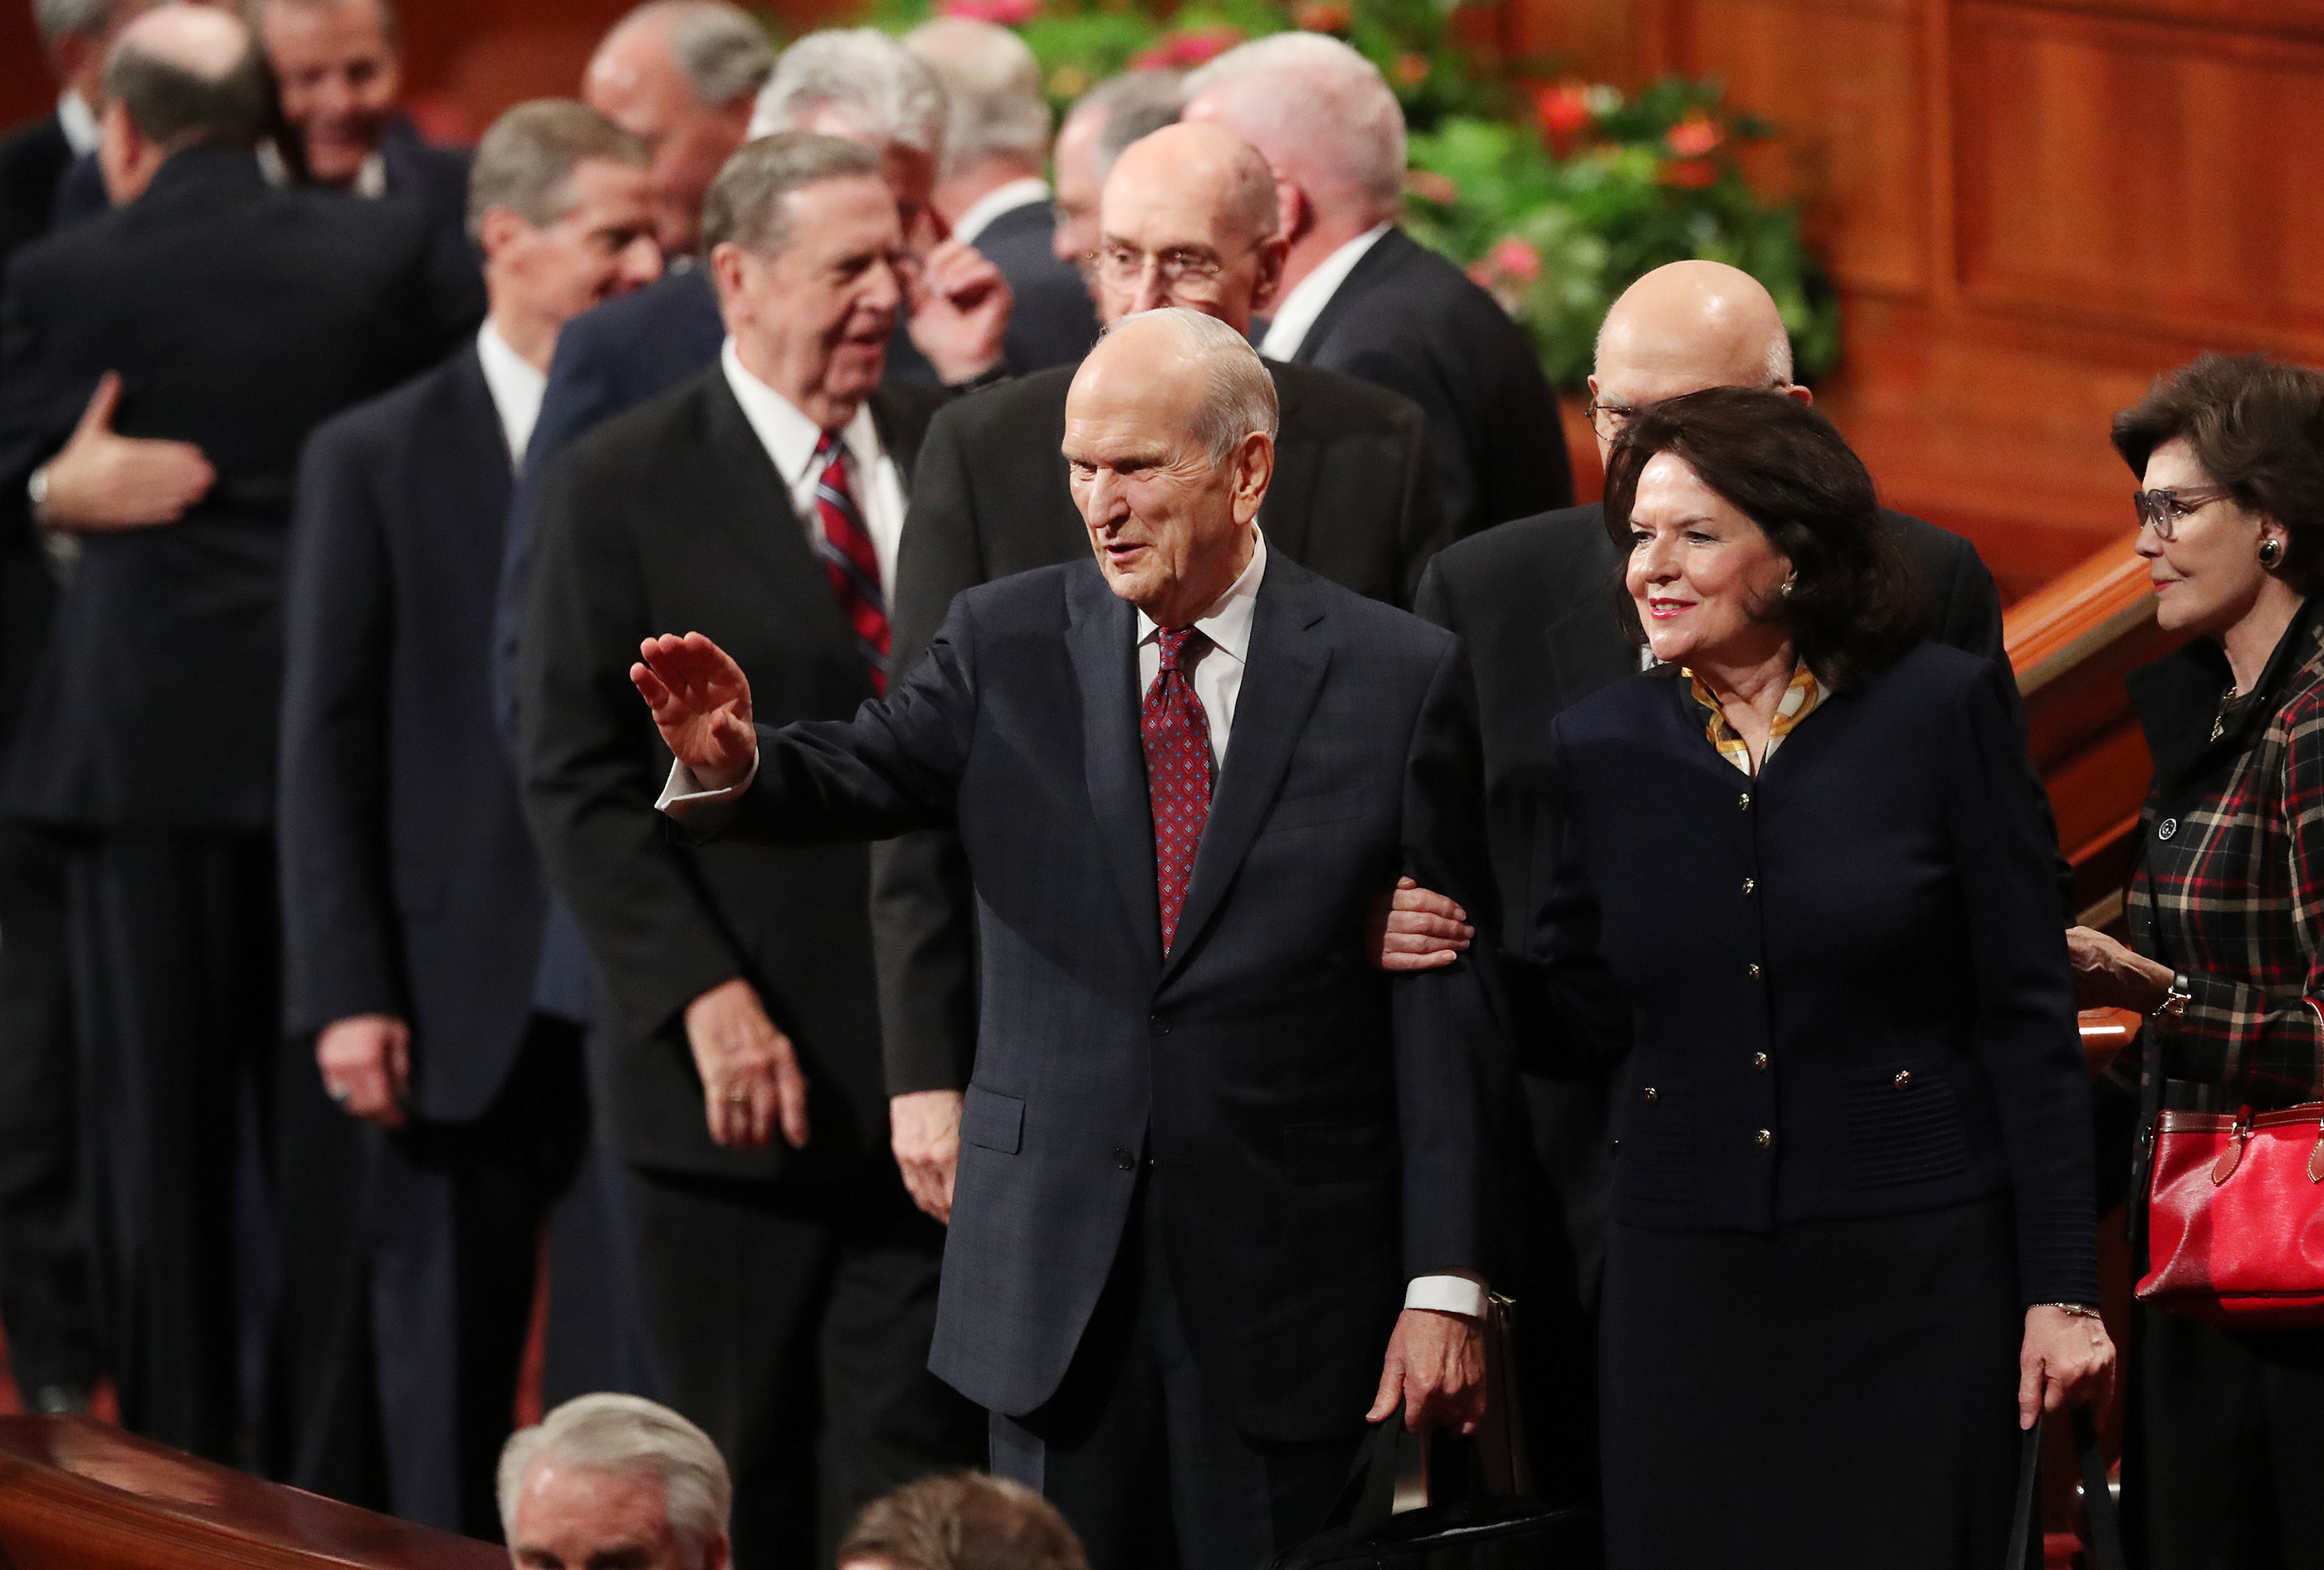 President Russell M. Nelson waves to attendees after the Sunday afternoon session of the 188th Semiannual General Conference of The Church of Jesus Christ of Latter-day Saints in the Conference Center in Salt Lake City on Sunday, Oct. 7, 2018.